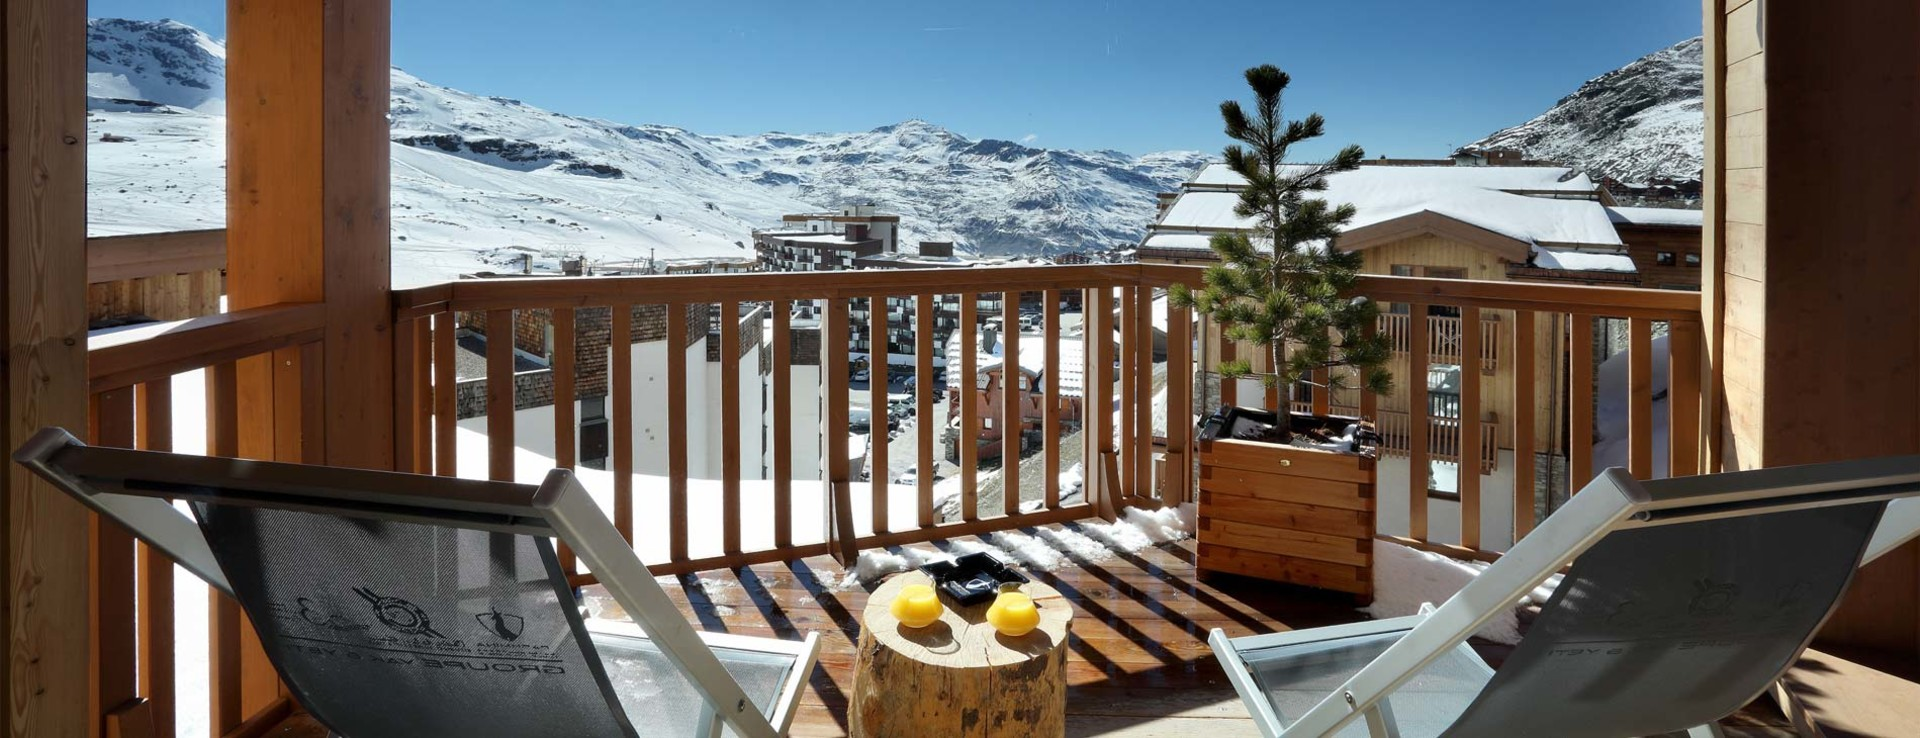 Hotel Pashmina Le Refuge 5 Star Hotel In Val Thorens With A View Millevista